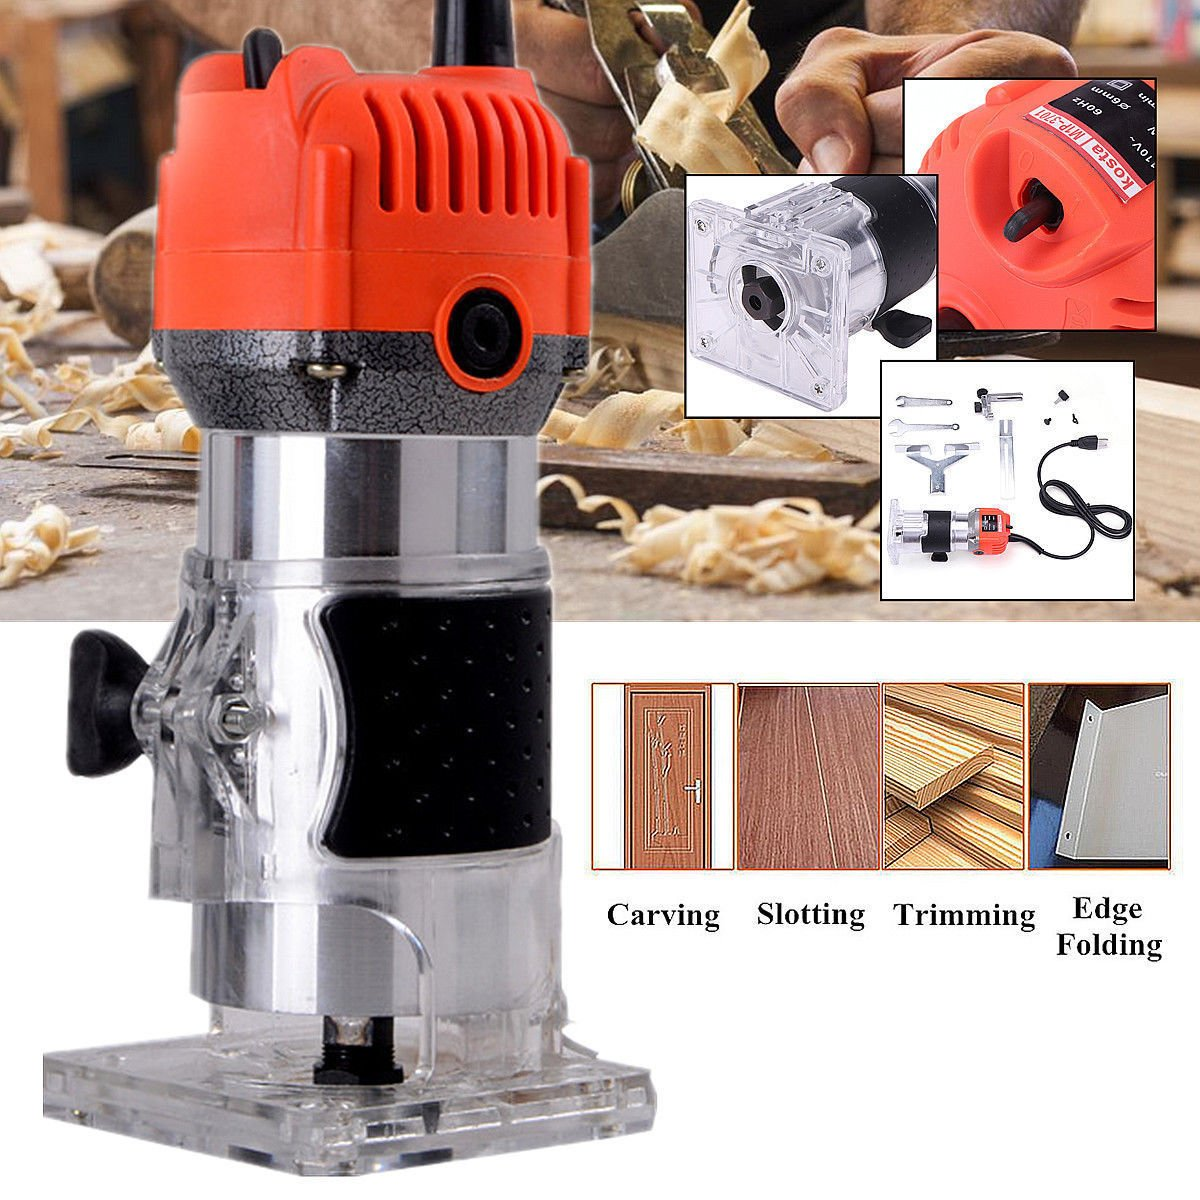 Compact Wood Palm Router, 30000RPM Electric Wood Edge Trimmer, 1/4 inch Collets Wood Laminate Palm Router Joiner Tool by PP